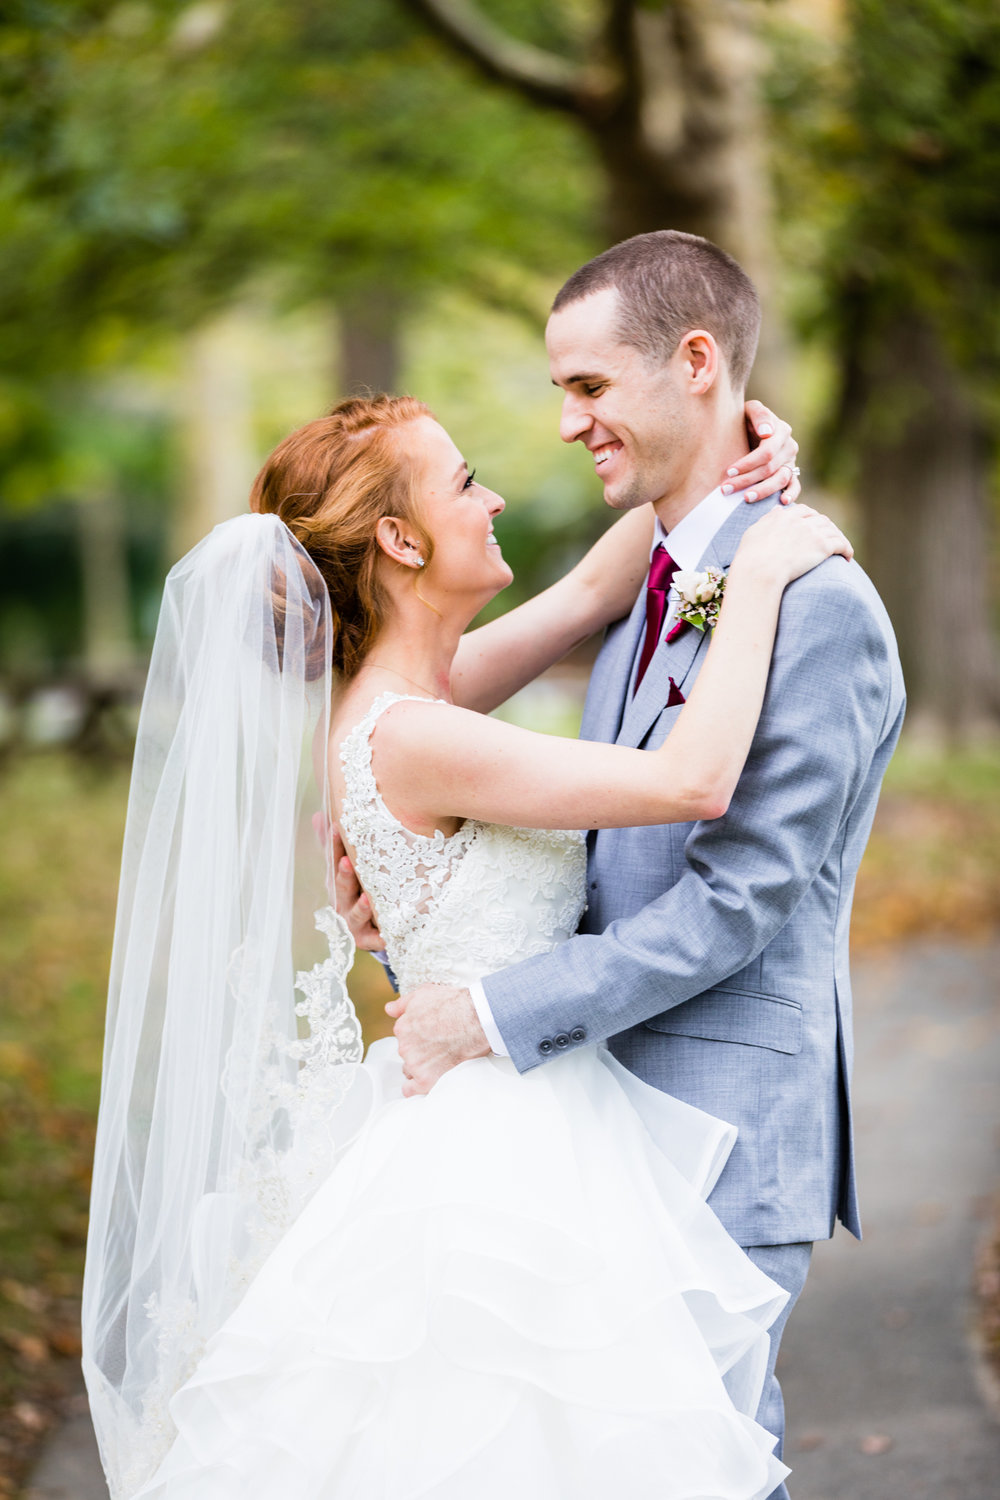 Eden Resorts and Spa Wedding Photography - Lovestruck Pictures-067.jpg